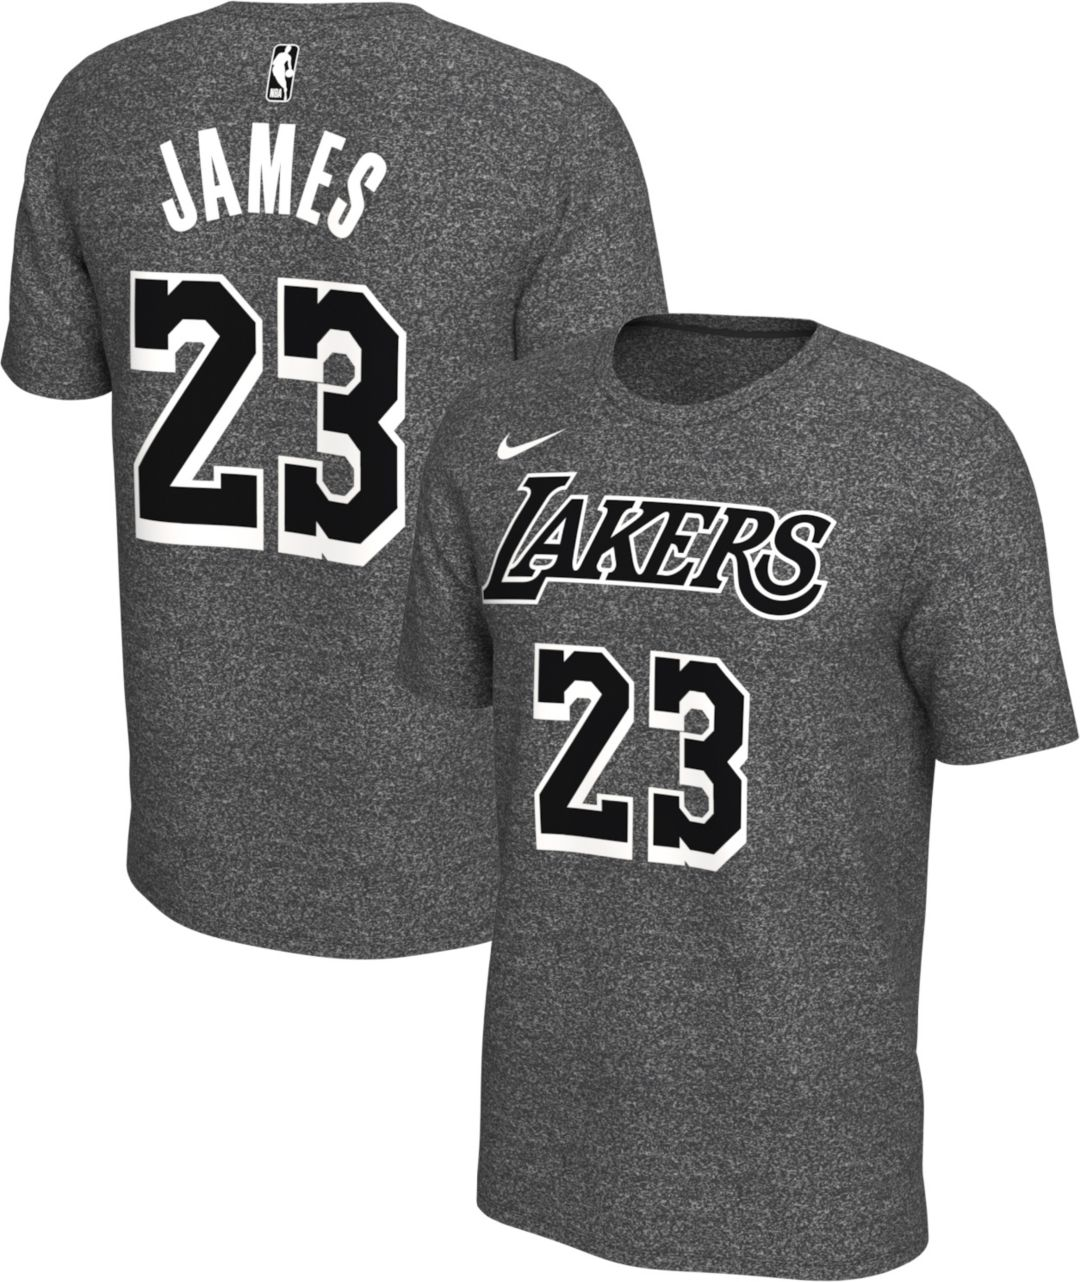 competitive price 91d15 353b2 Nike Men's Los Angeles Lakers LeBron James #23 Dri-FIT Grey T-Shirt